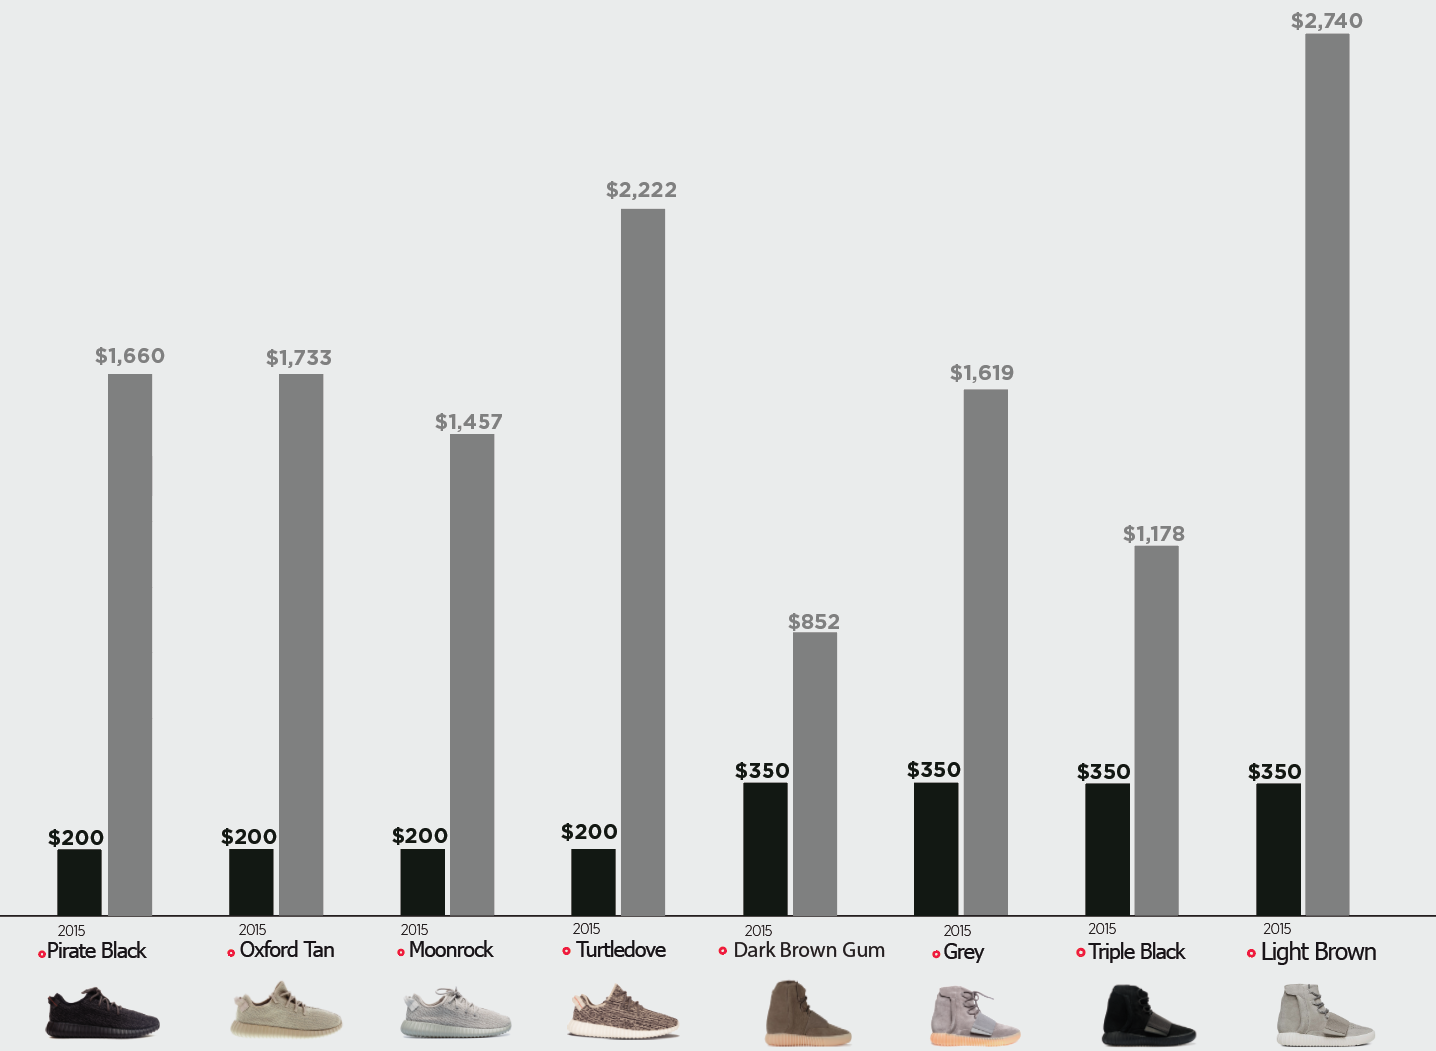 Infographic from Nikeshoebot.com shows the drastic price tag markup when re-selling Yeezy Shoes. The black bar represents the original market price, and in contrasting to it the grey bar represents how high many distributors increase their resale price. Yeezy, a clothing line by Kanye West, has been known to have limited supply, and the new prices make it even harder to obtain. Photo from Nikeshoebot.com